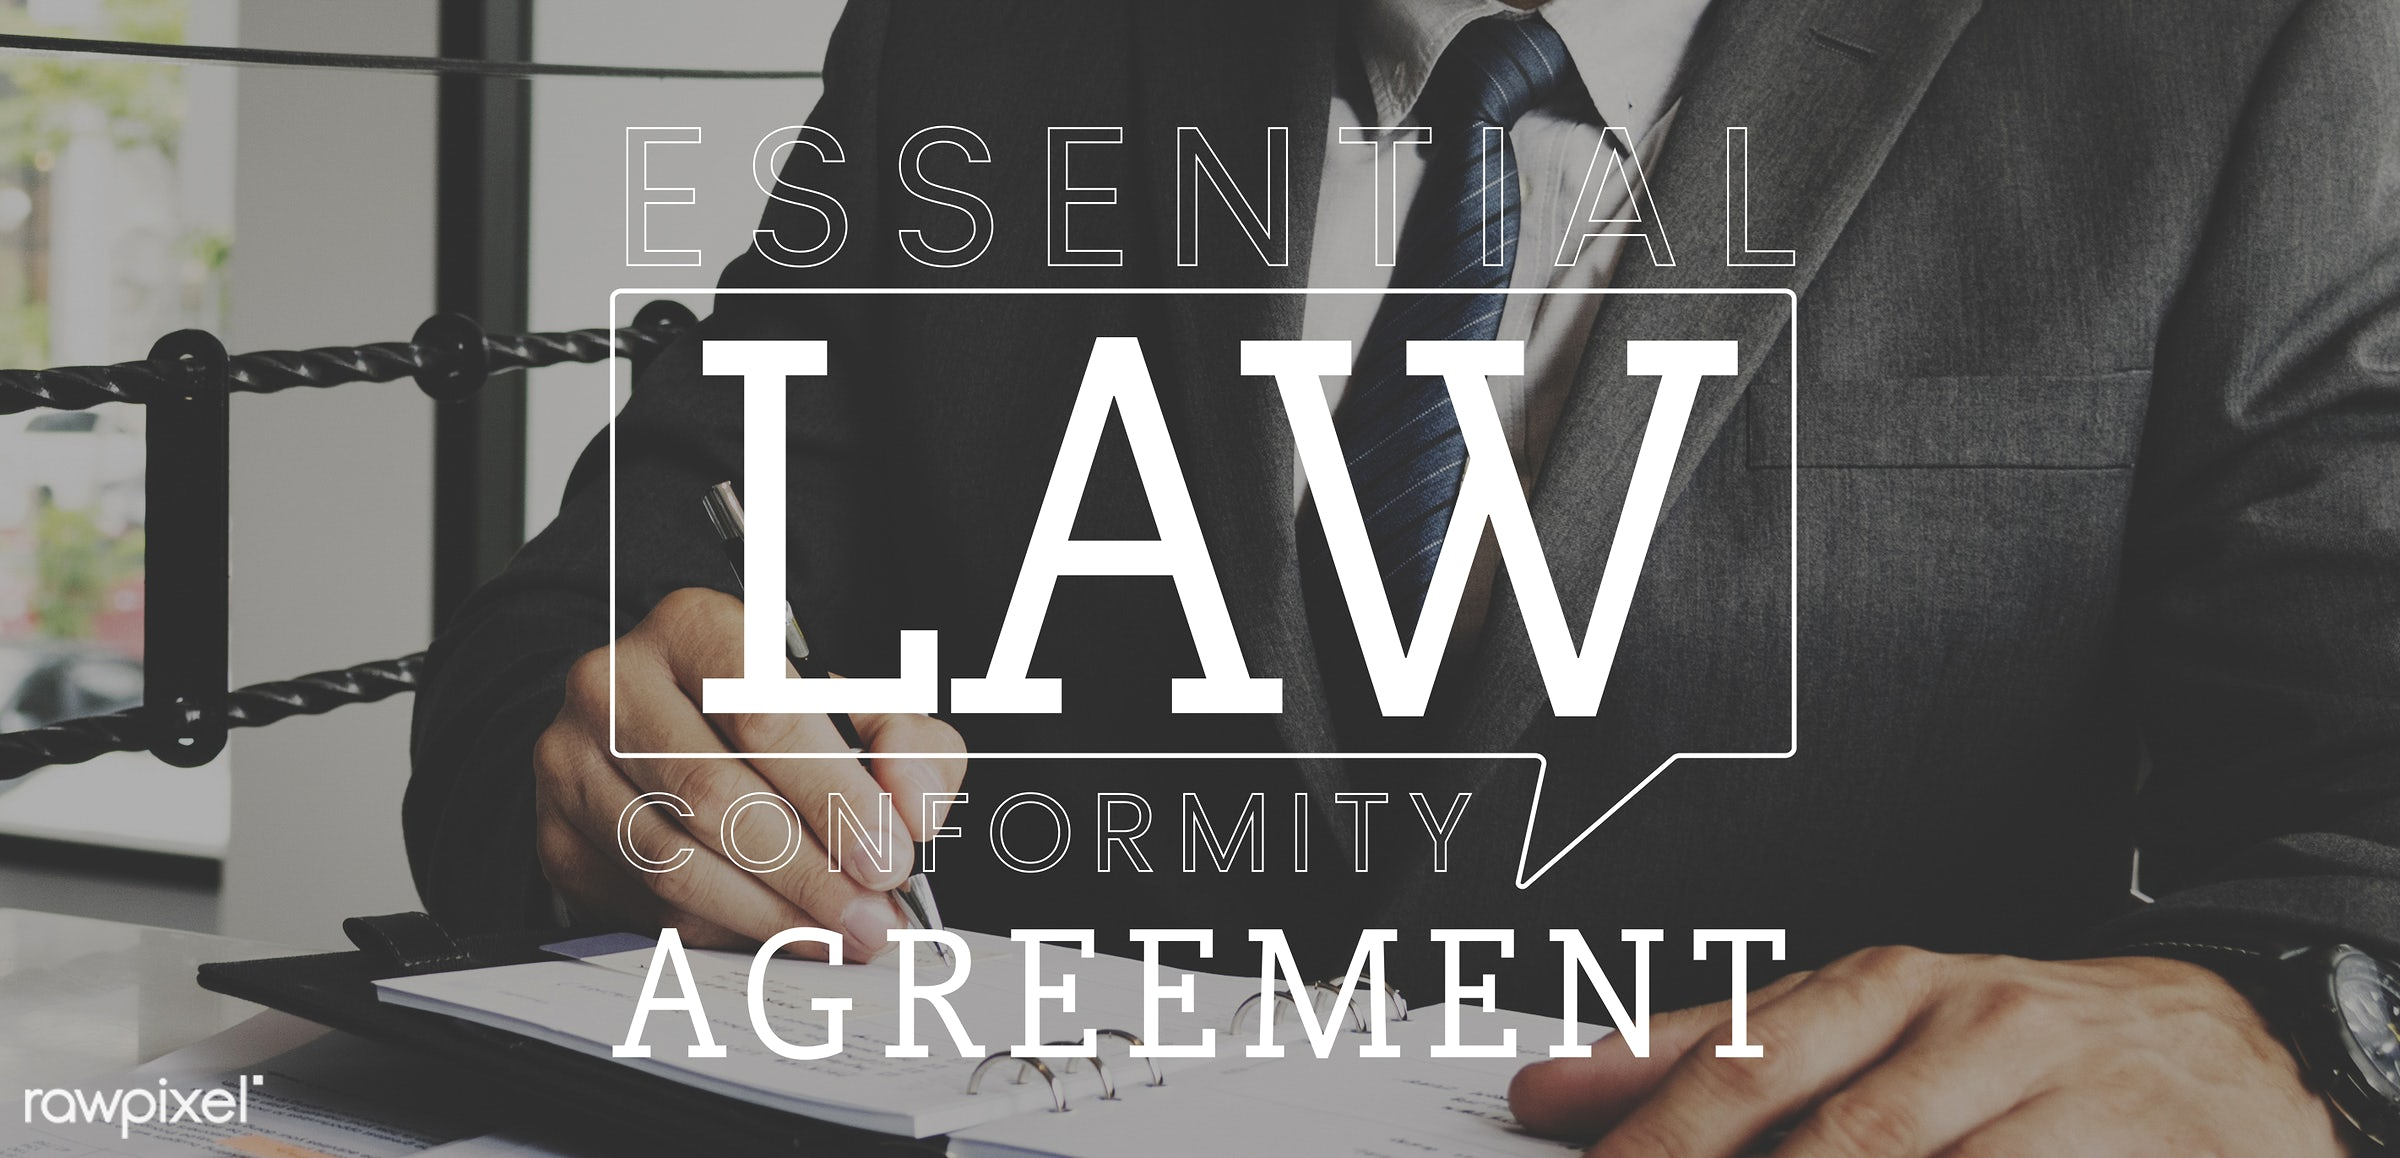 adult, agenda, agreement, businessman, businesspeople, control, court, equality, fairness, governance, hands,...